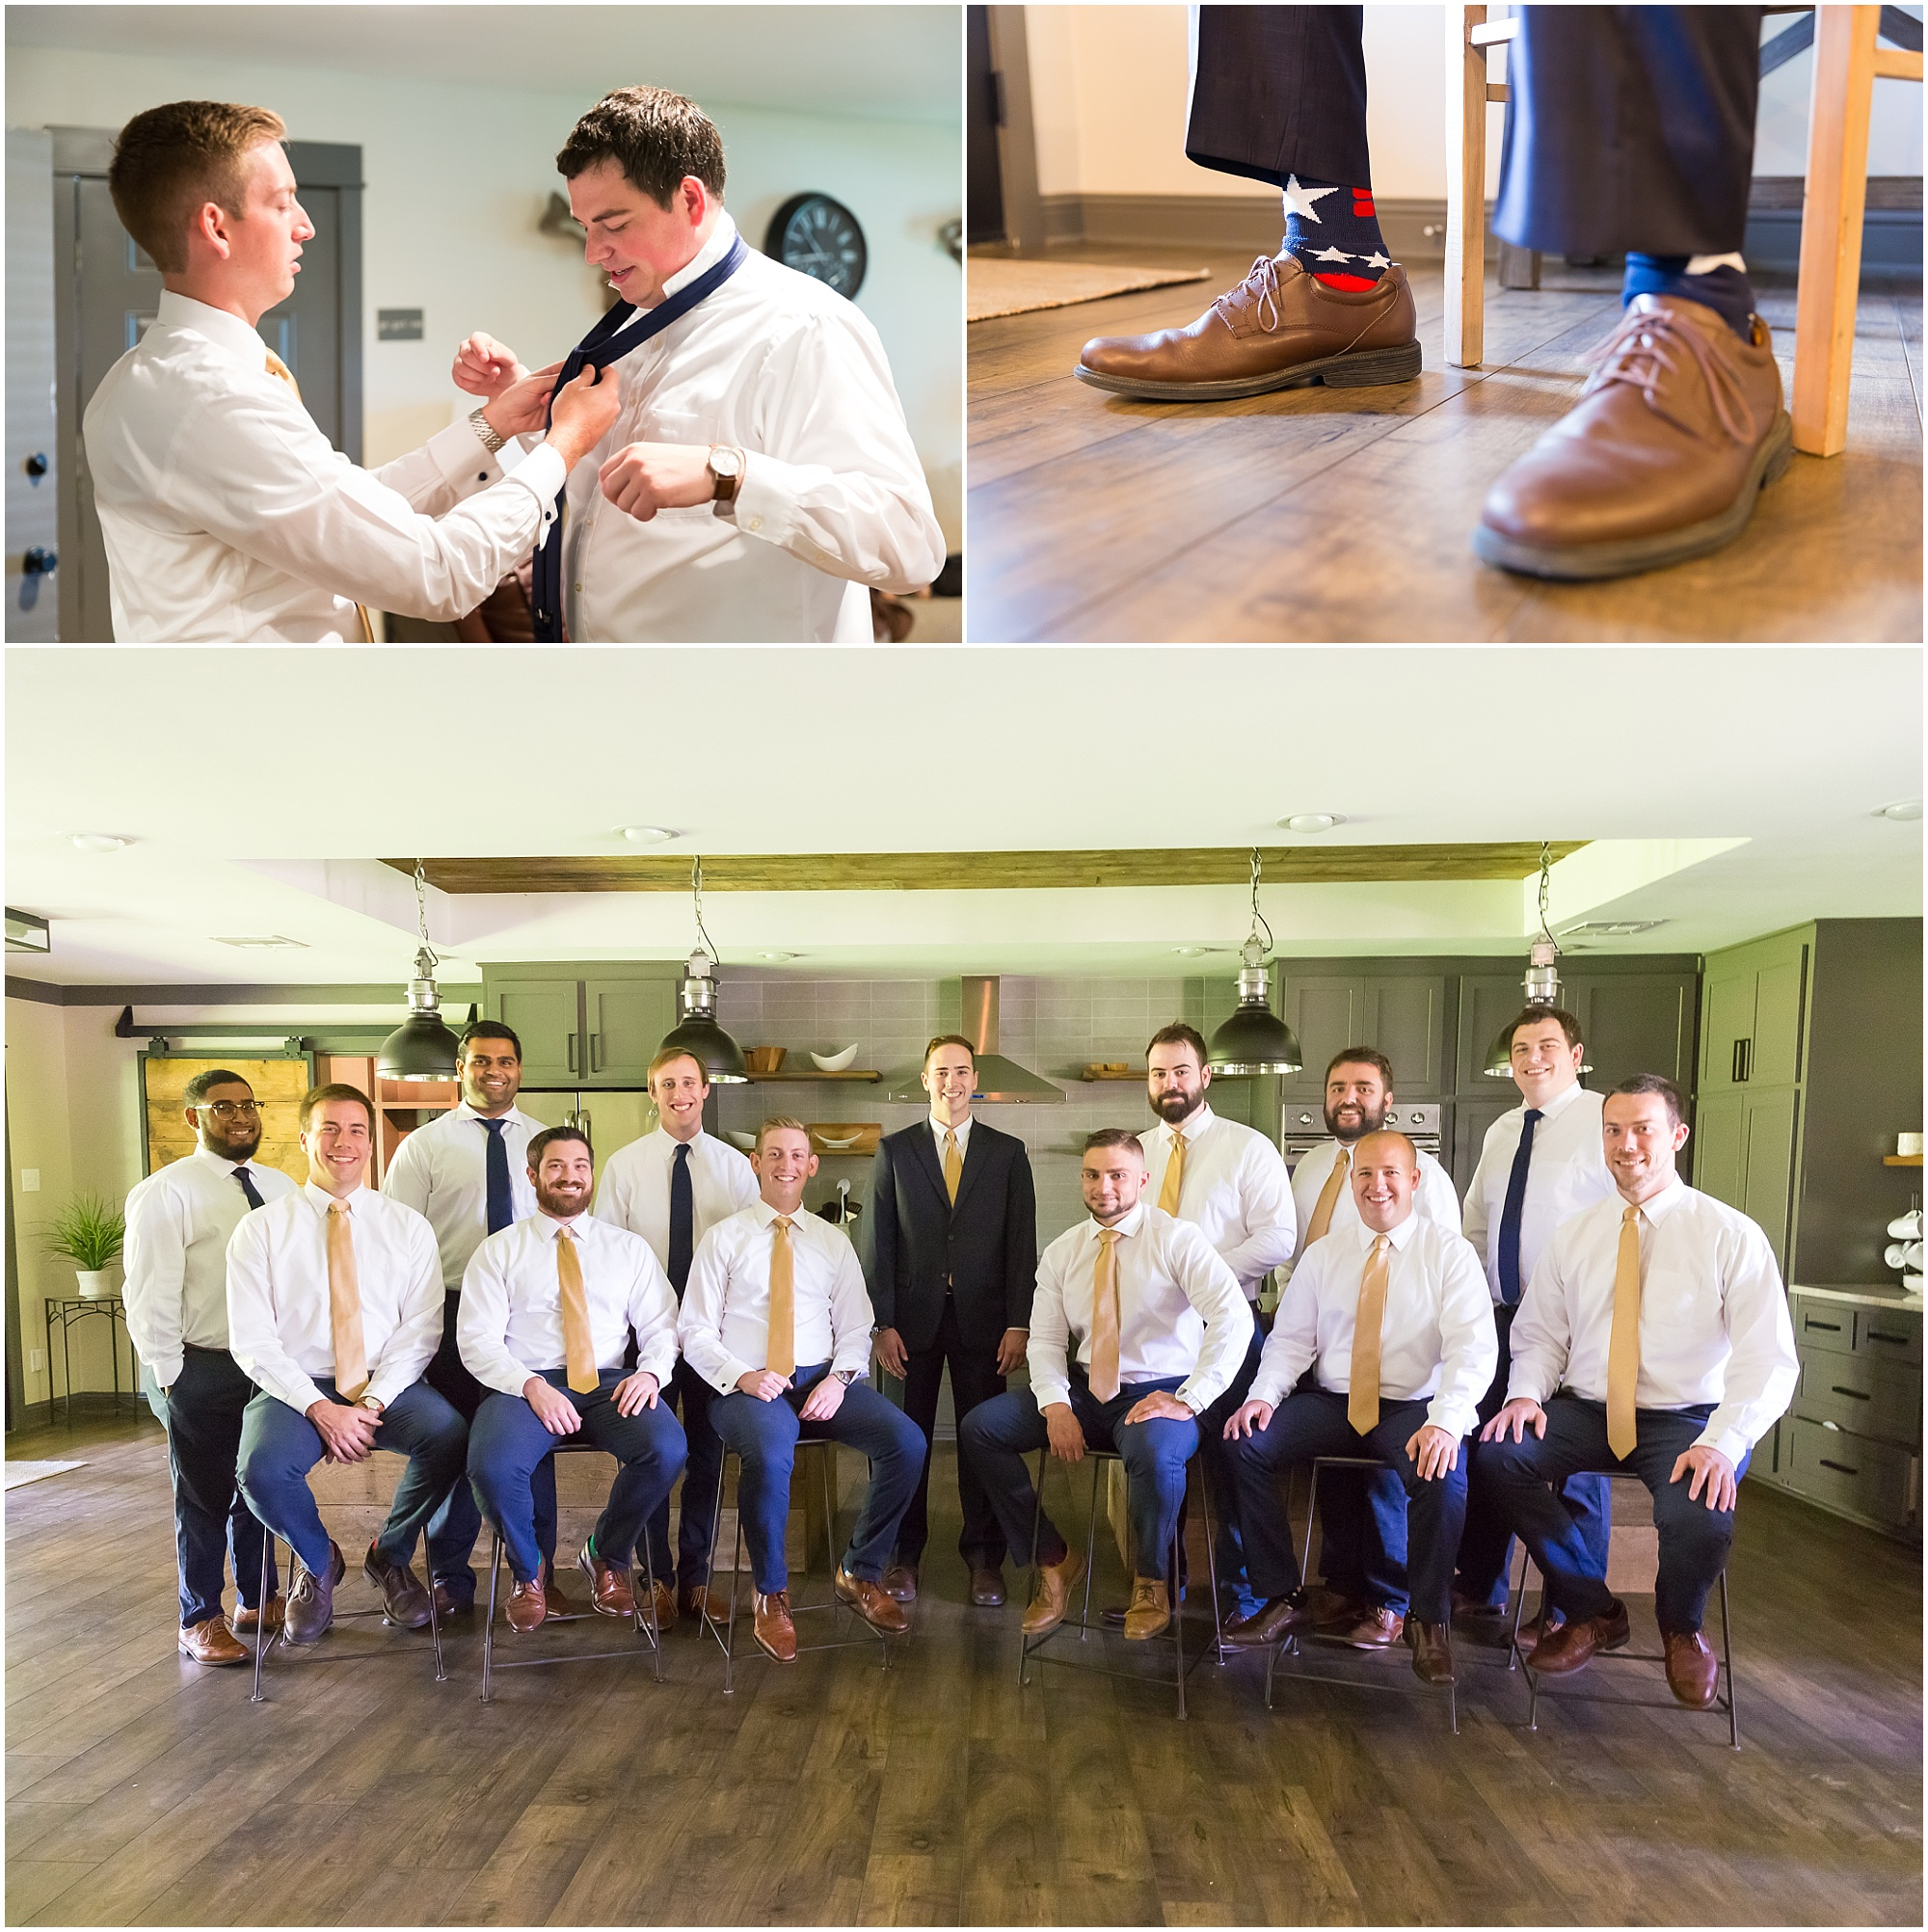 A groom and his groomsmen hang out in a Fixer Upper Airbnb for his summer wedding in Waco, Texas - Jason & Melaina Photography - www.jasonandmelaina.com